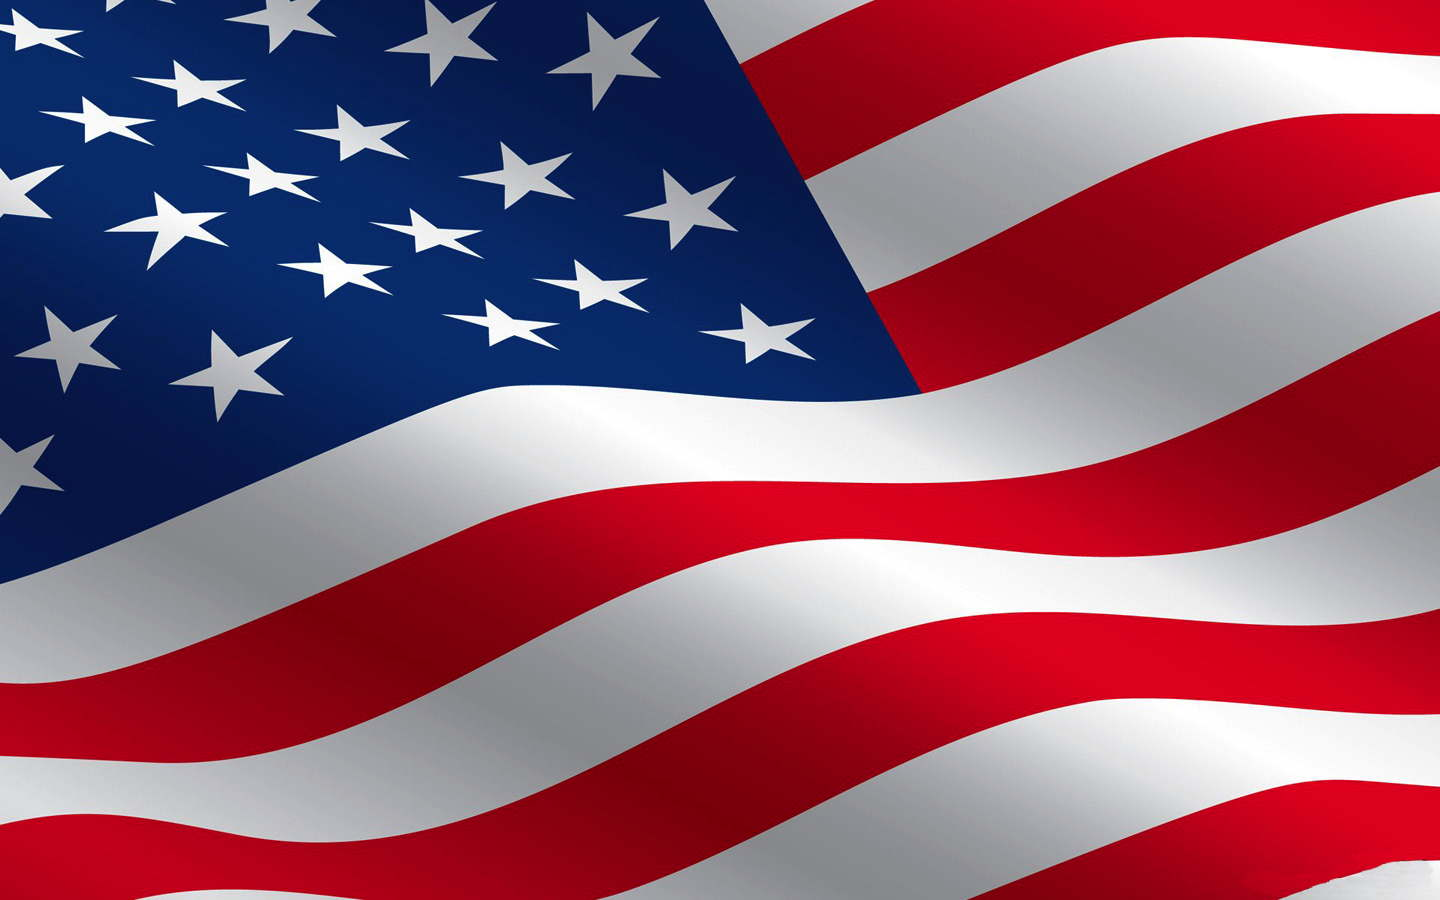 US Flag Wallpapers 1440x900